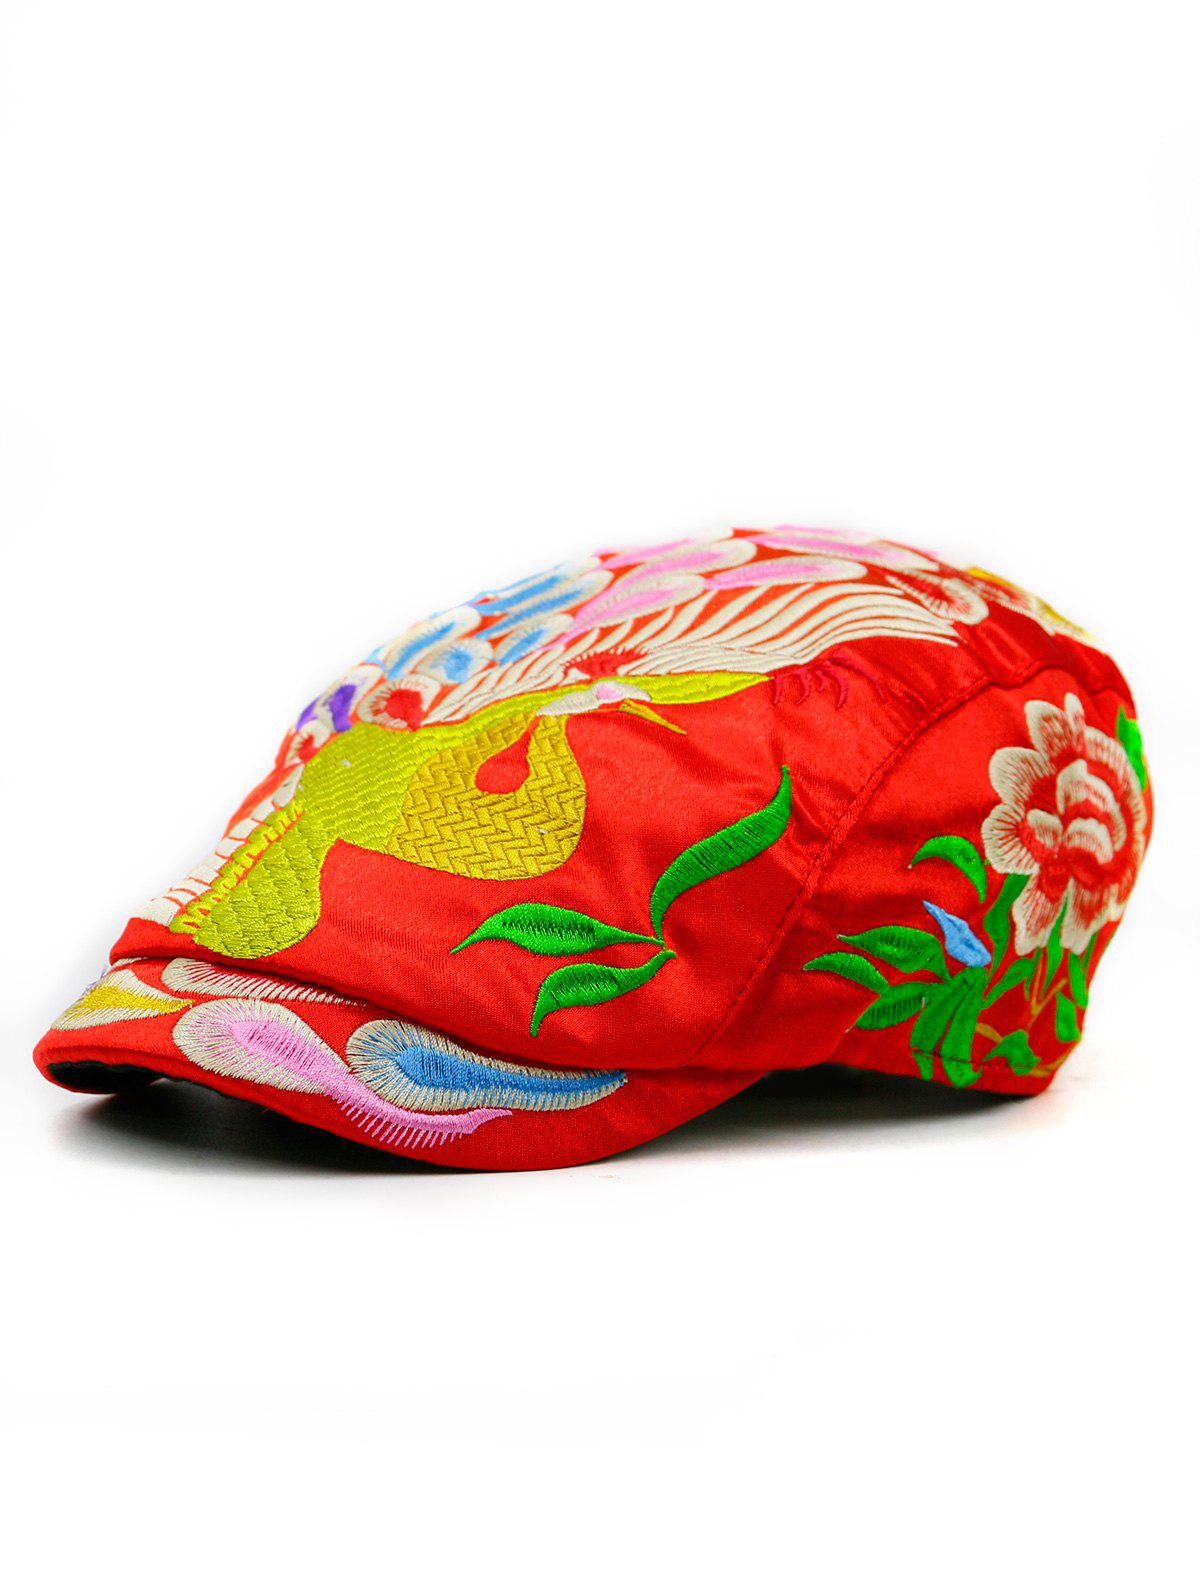 Peacock Embroidered Ivy Hat - RED